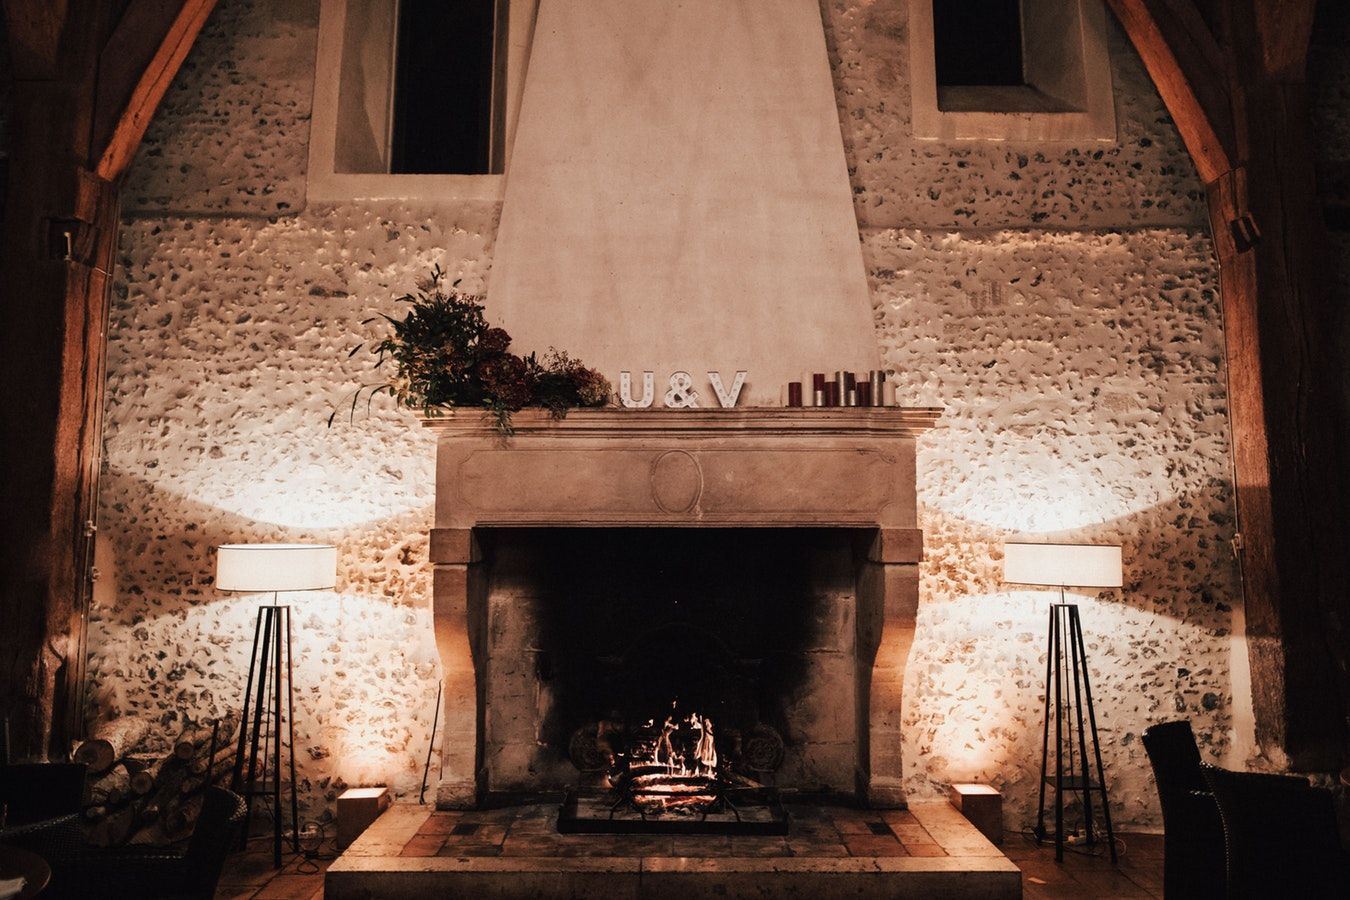 Gas Vs Electric Fireplace Pros And Cons Your Guide To Buying Fireplaces In Ottawa The Burning Log